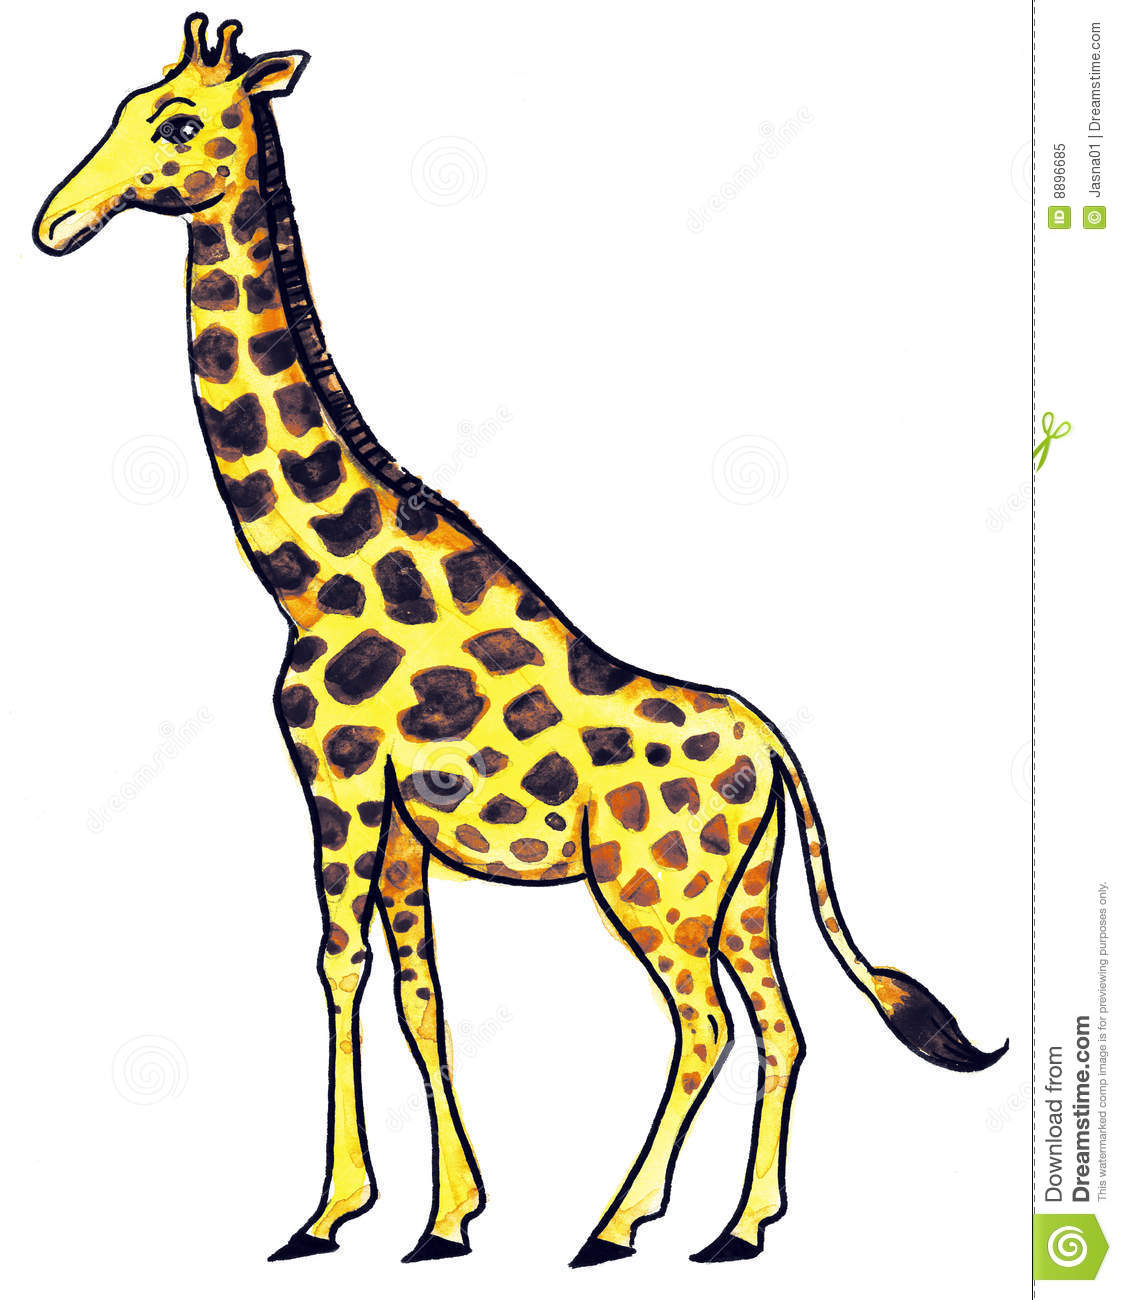 Yellow Giraffe Royalty Free Stock Photo - Image: 8896685